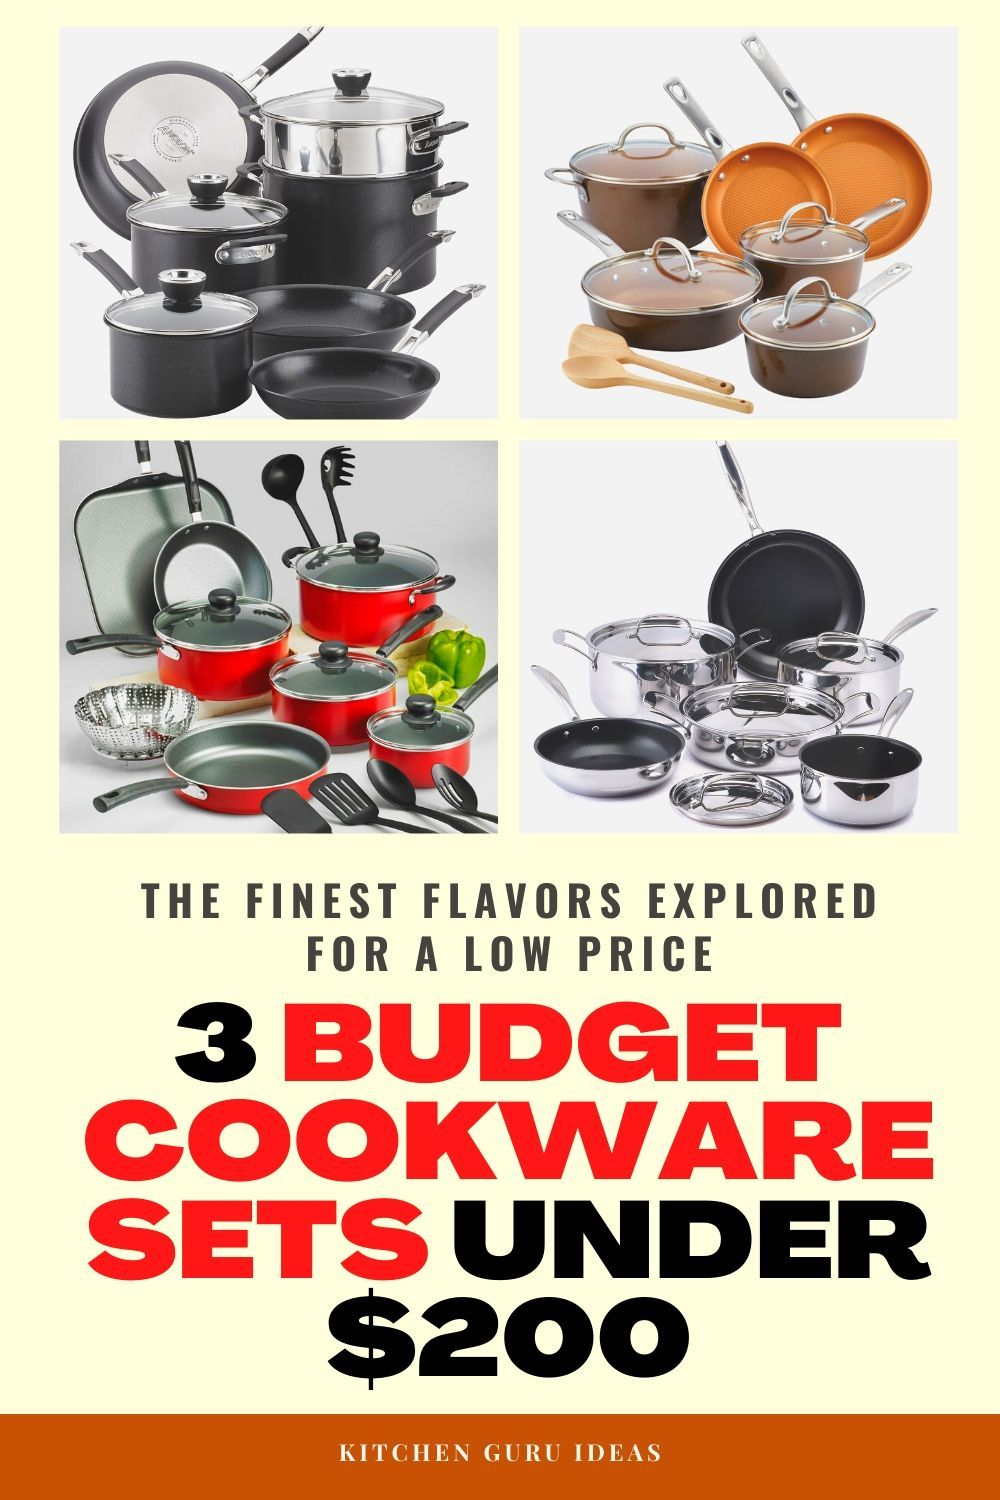 The 3 Best Cookware Sets Under 200 Of Year Are Kitchen Guru Cookware Sets Cookware Set Kitchen Guru